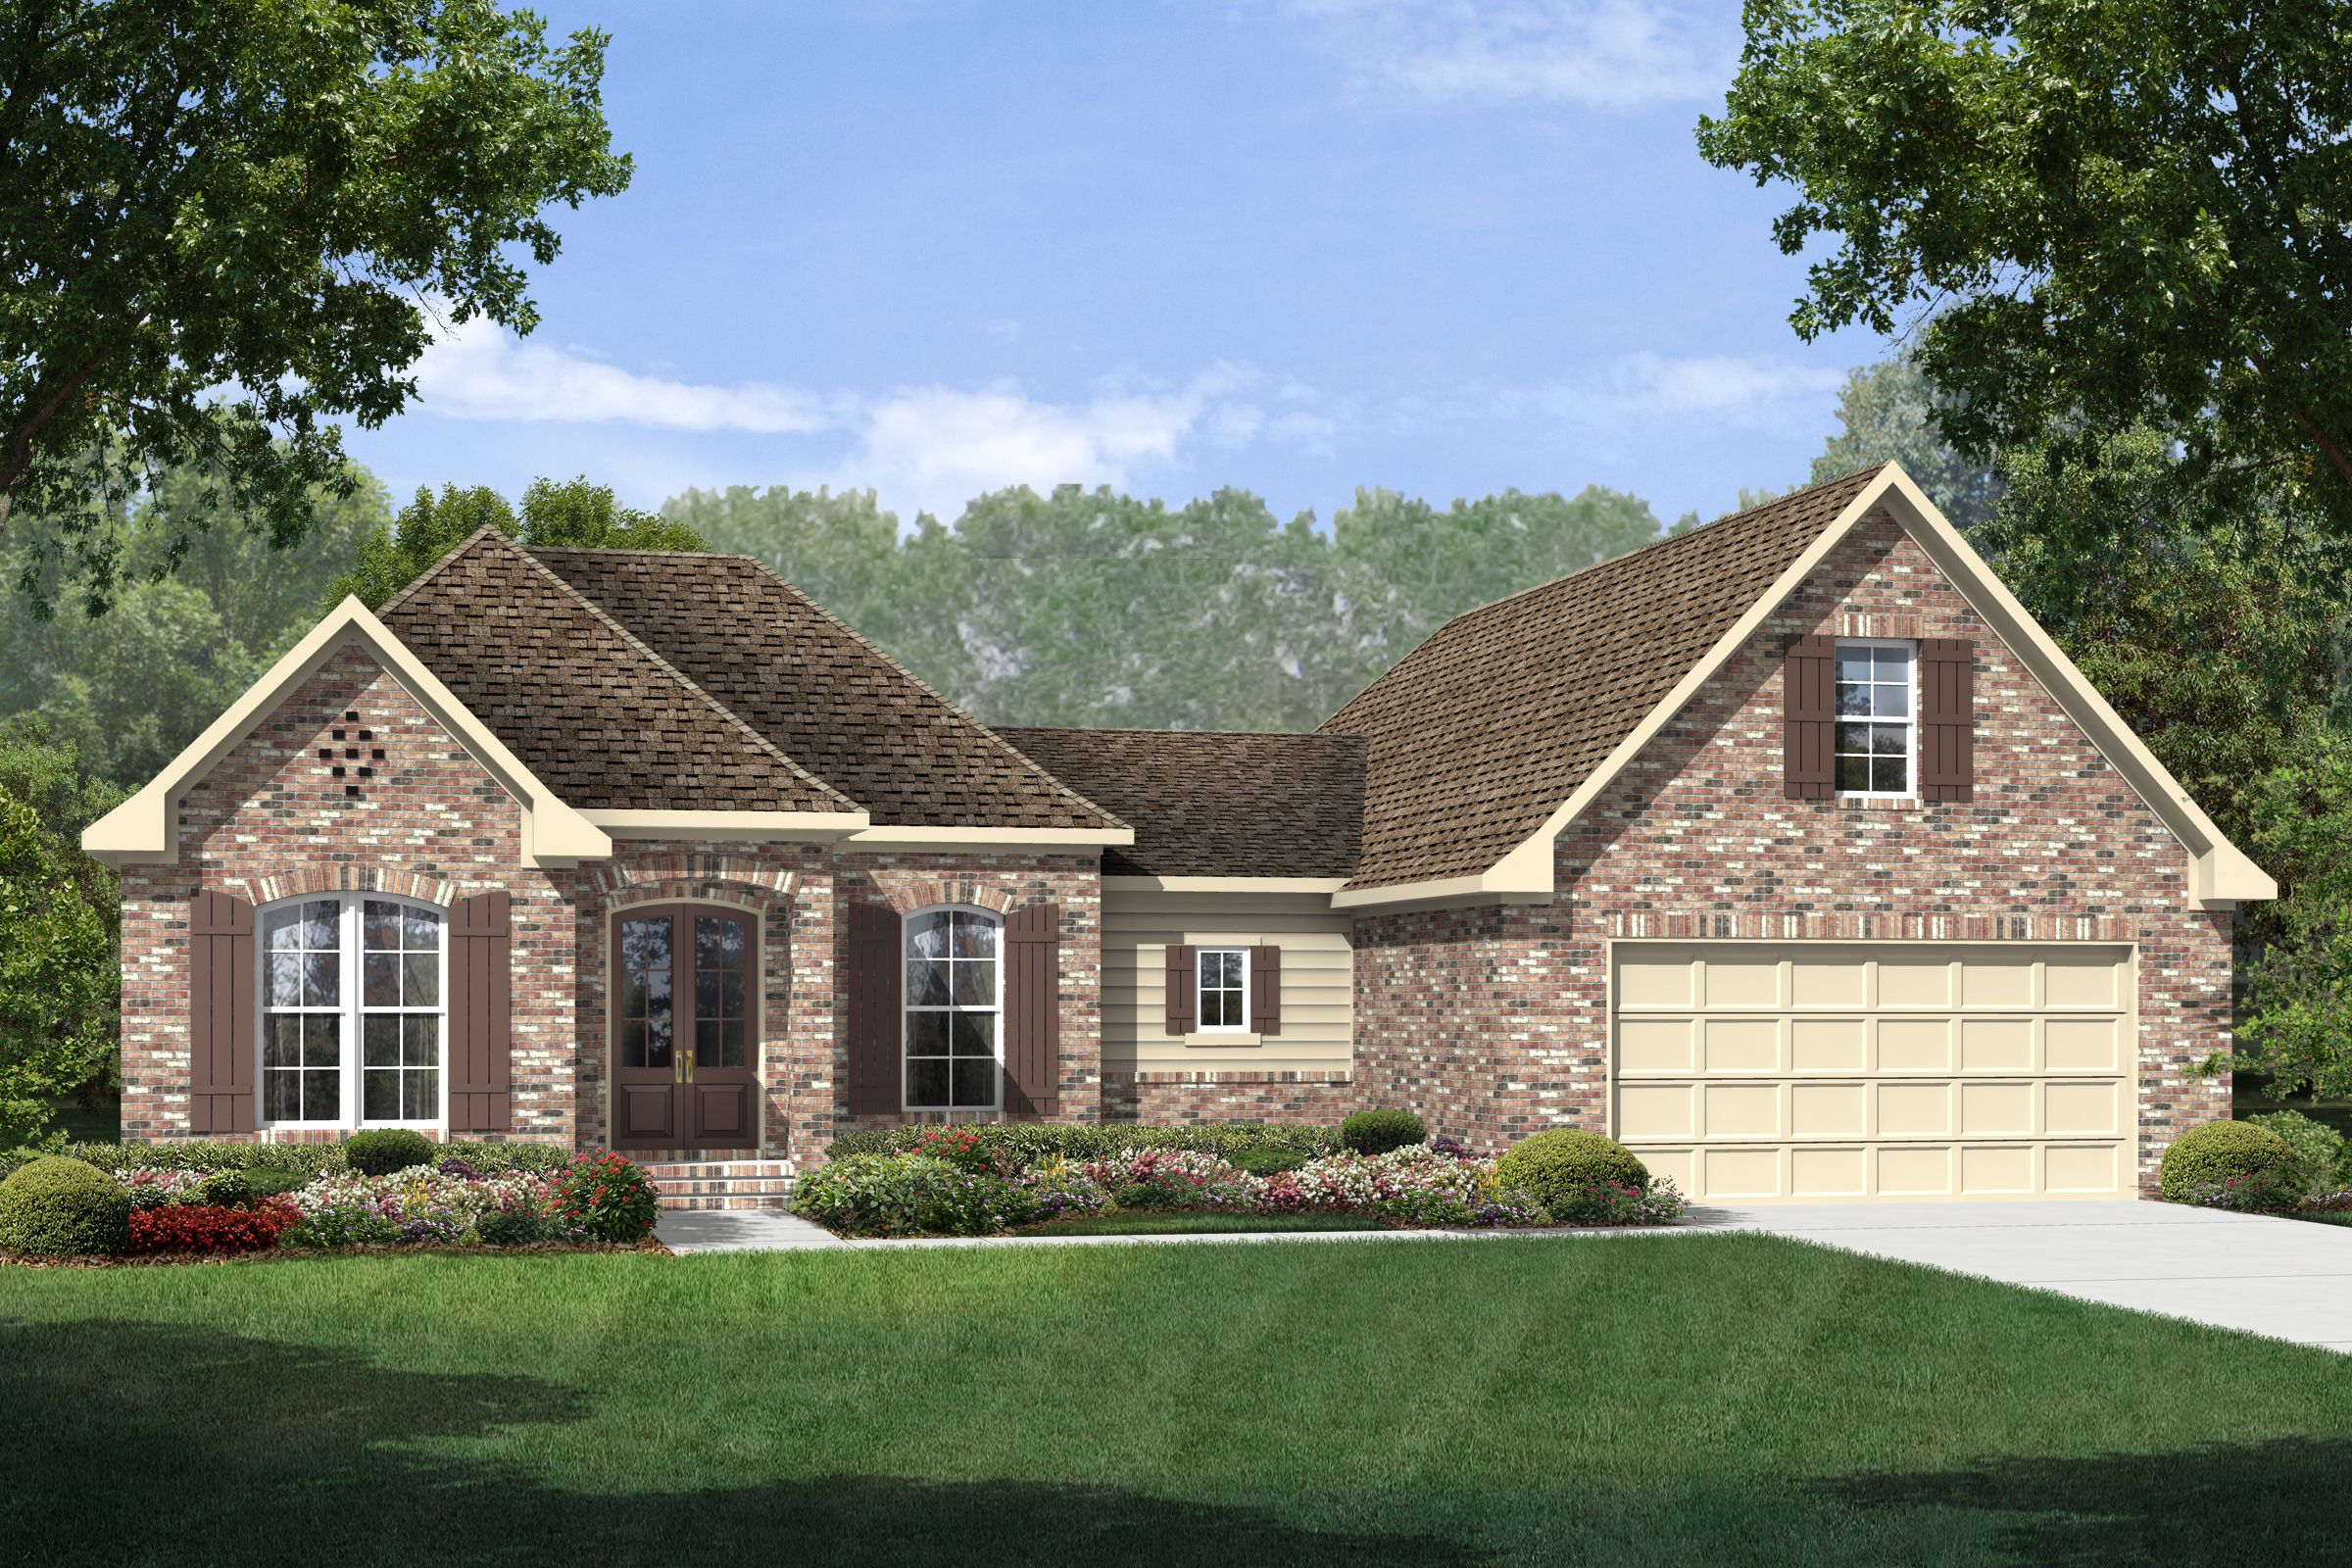 796785a11a4958b190ac8f7317fcec0b Top Result 52 Best Of Craftsman Style Home Plans Photography 2017 Hdj5